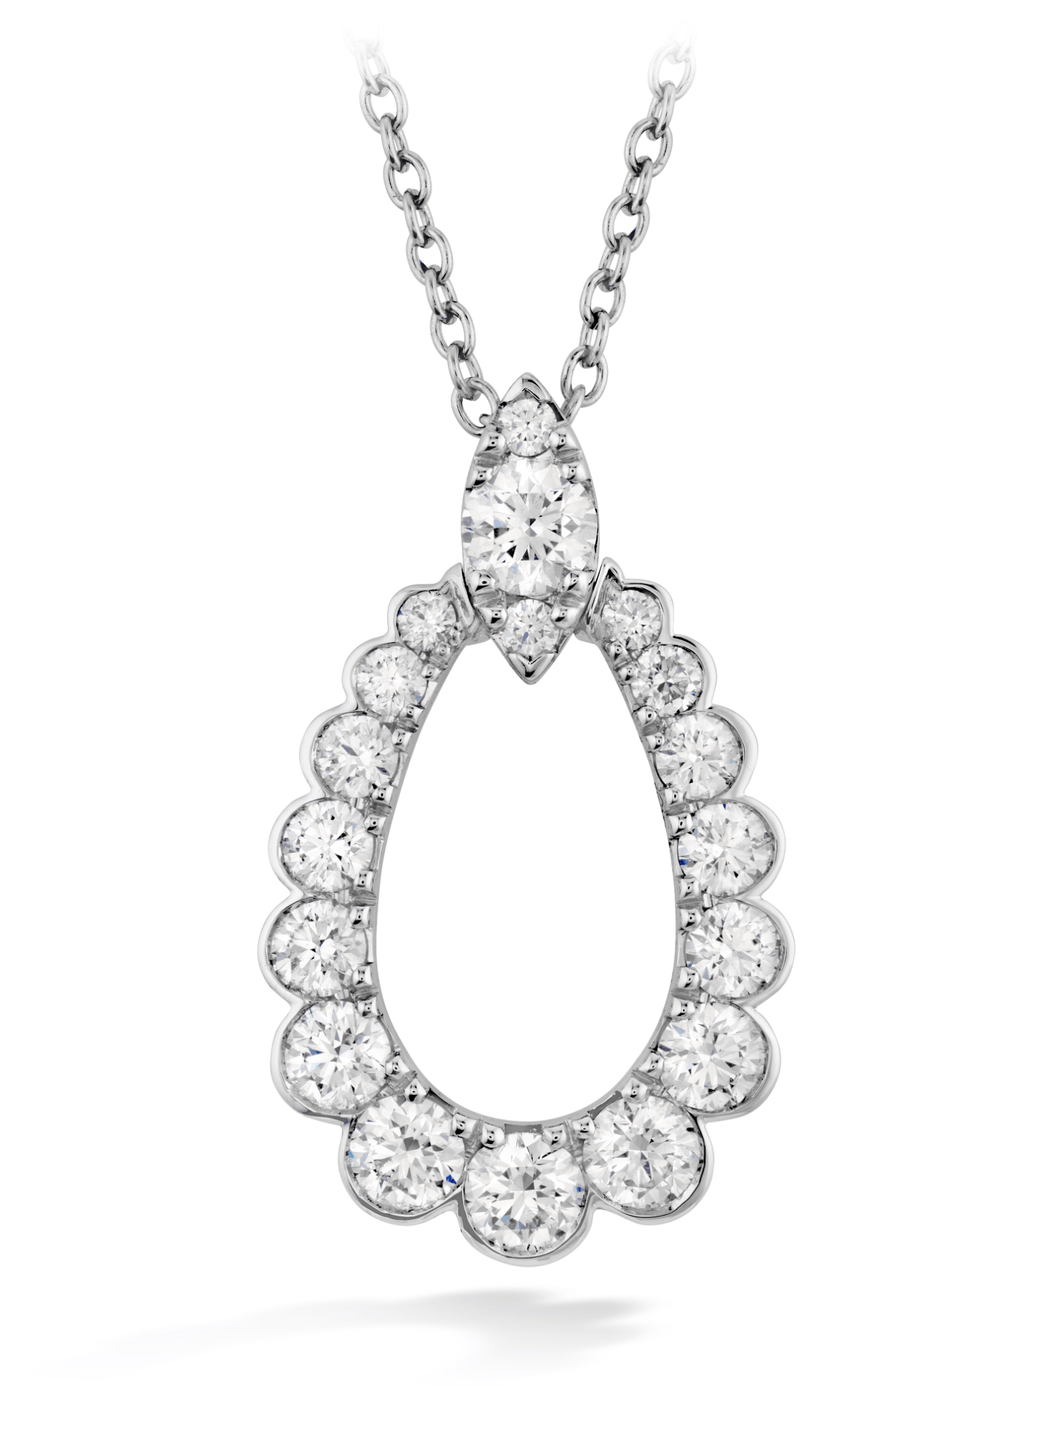 AERIAL REGAL TEARDROP PENDANT - M&R Jewelers